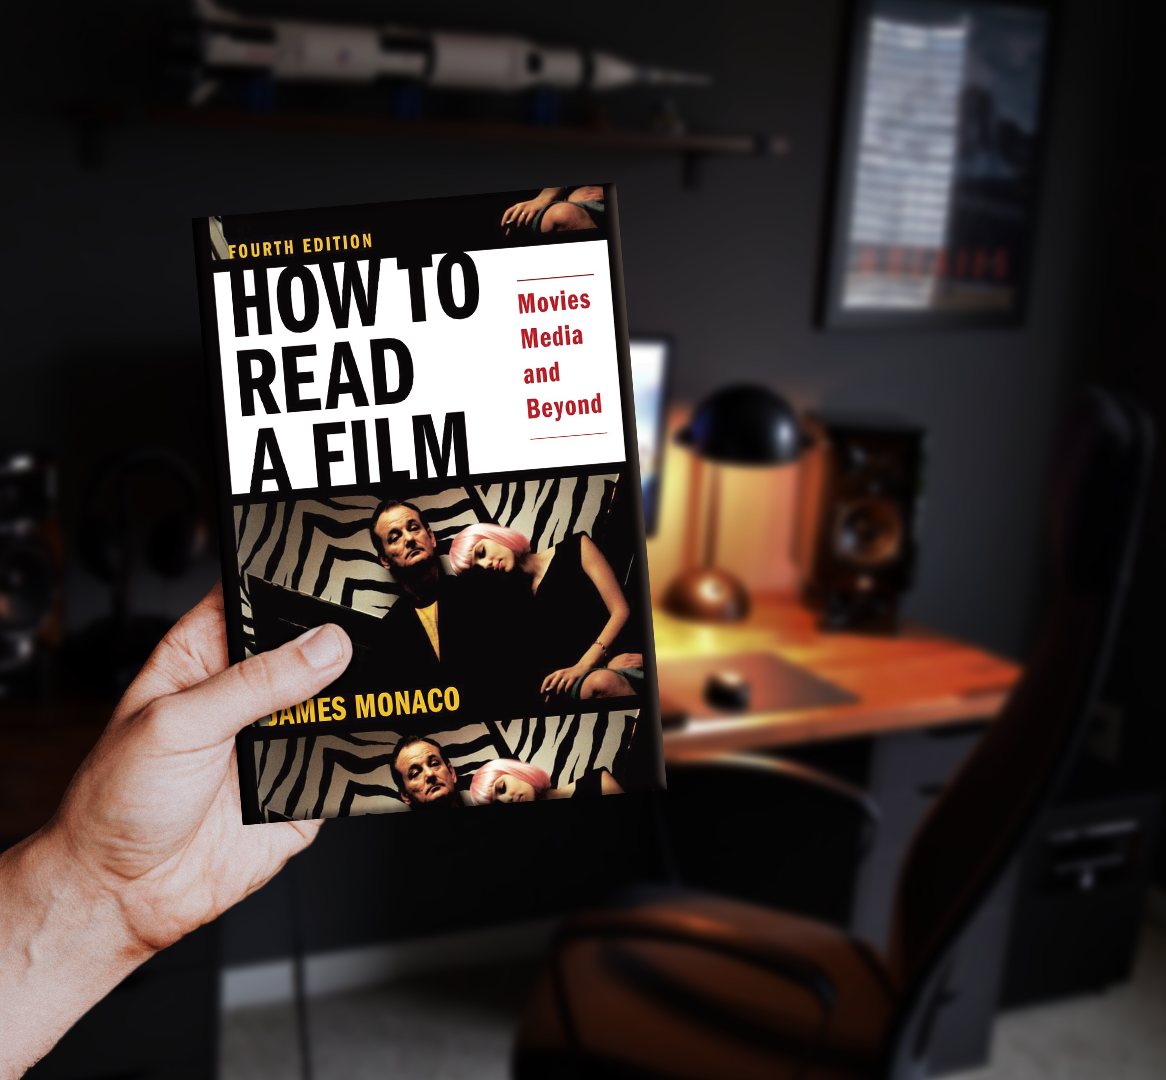 how to read film book for analysing and studying film reading for students studying film cinema movies